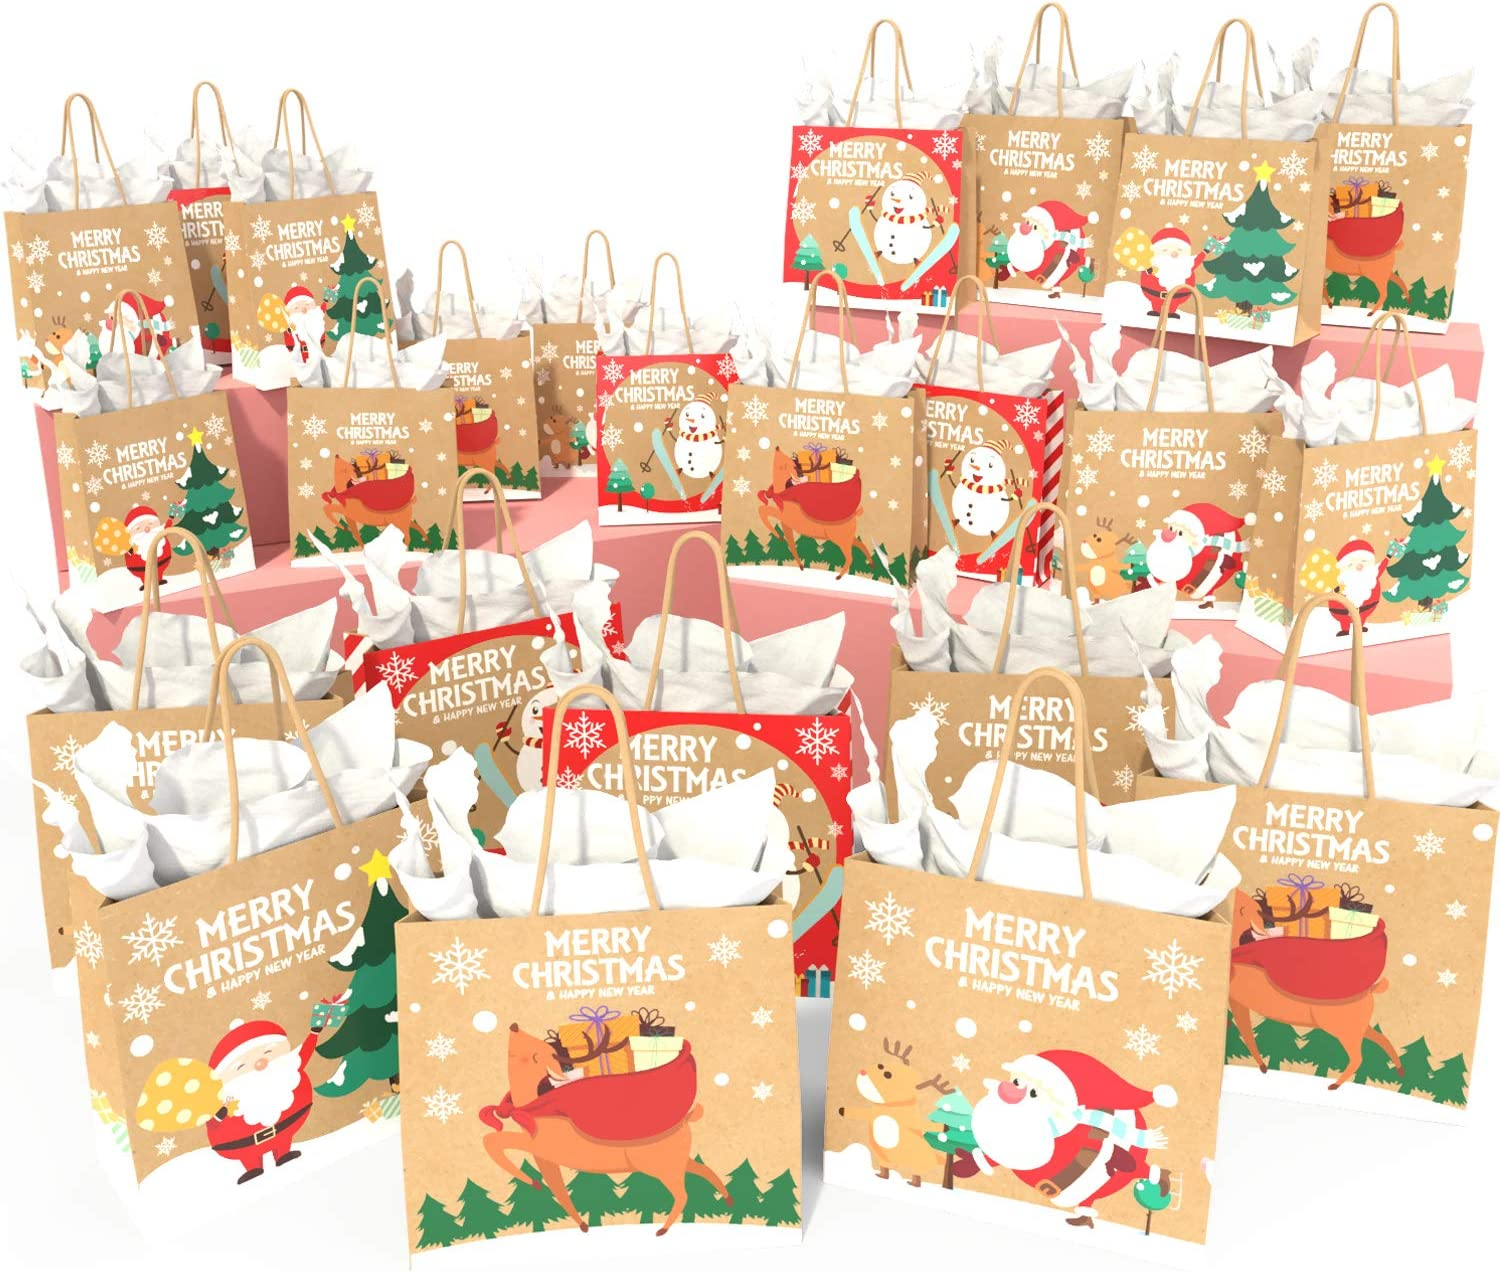 KD KIDPAR 24pcs Christmas Kraft Gift Bags Set Christmas Prints Bags with 24 Tissue Papers, Goody Bags, Xmas Gift Bags, School Classrooms and Party Favors